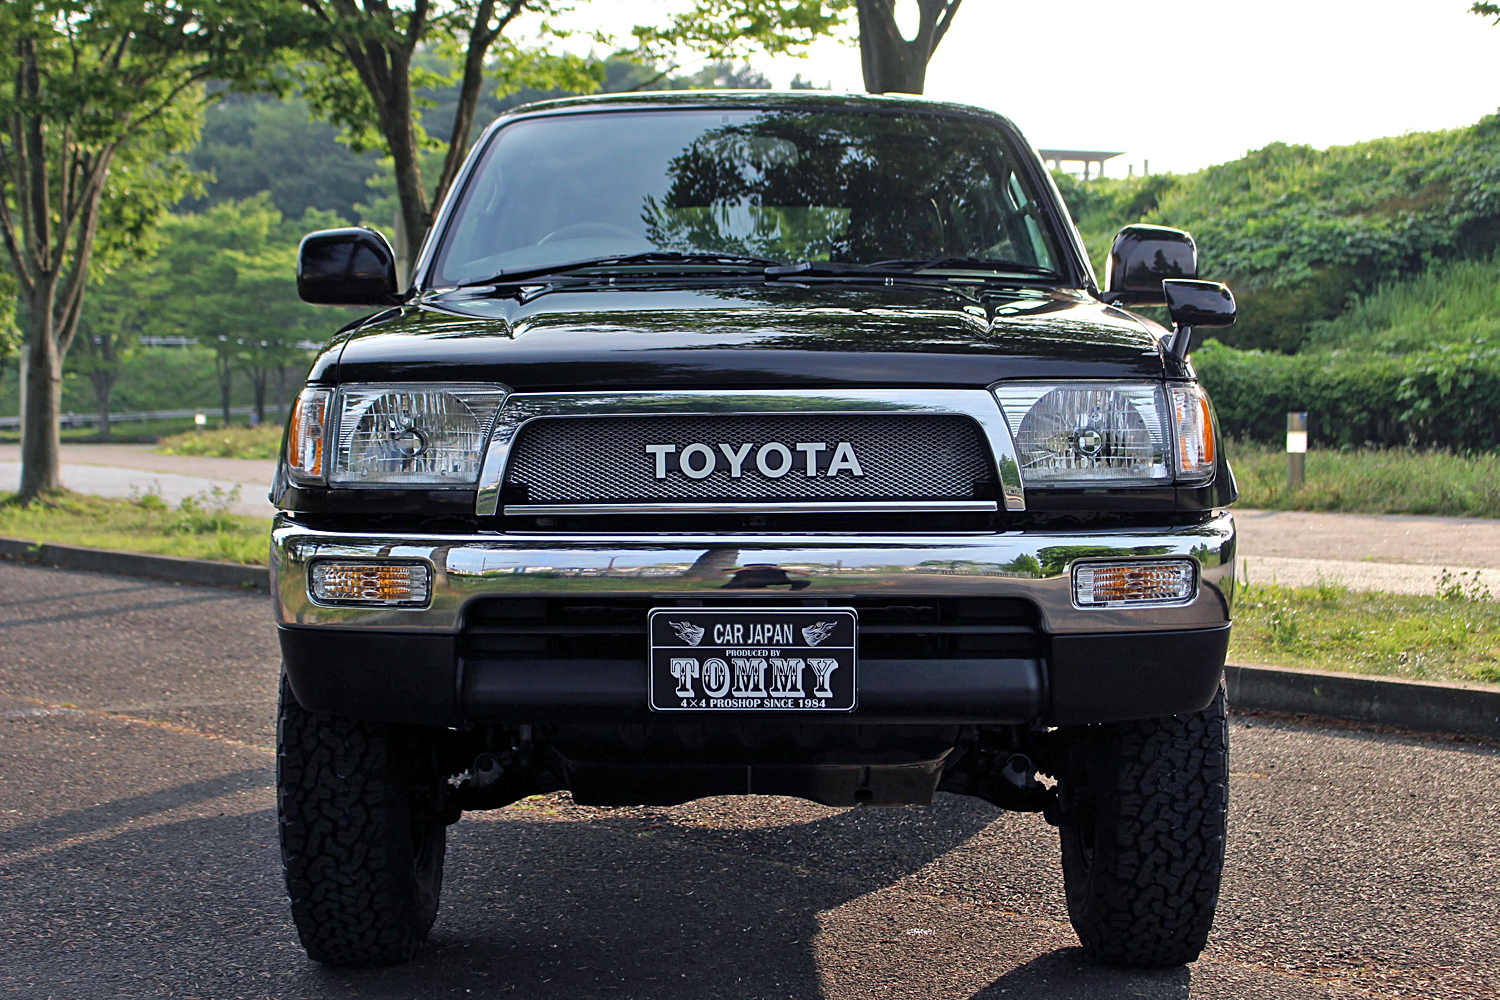 rzn185Hiluxsurf Dark Brown Metallic Narrow costom-fukudasama03